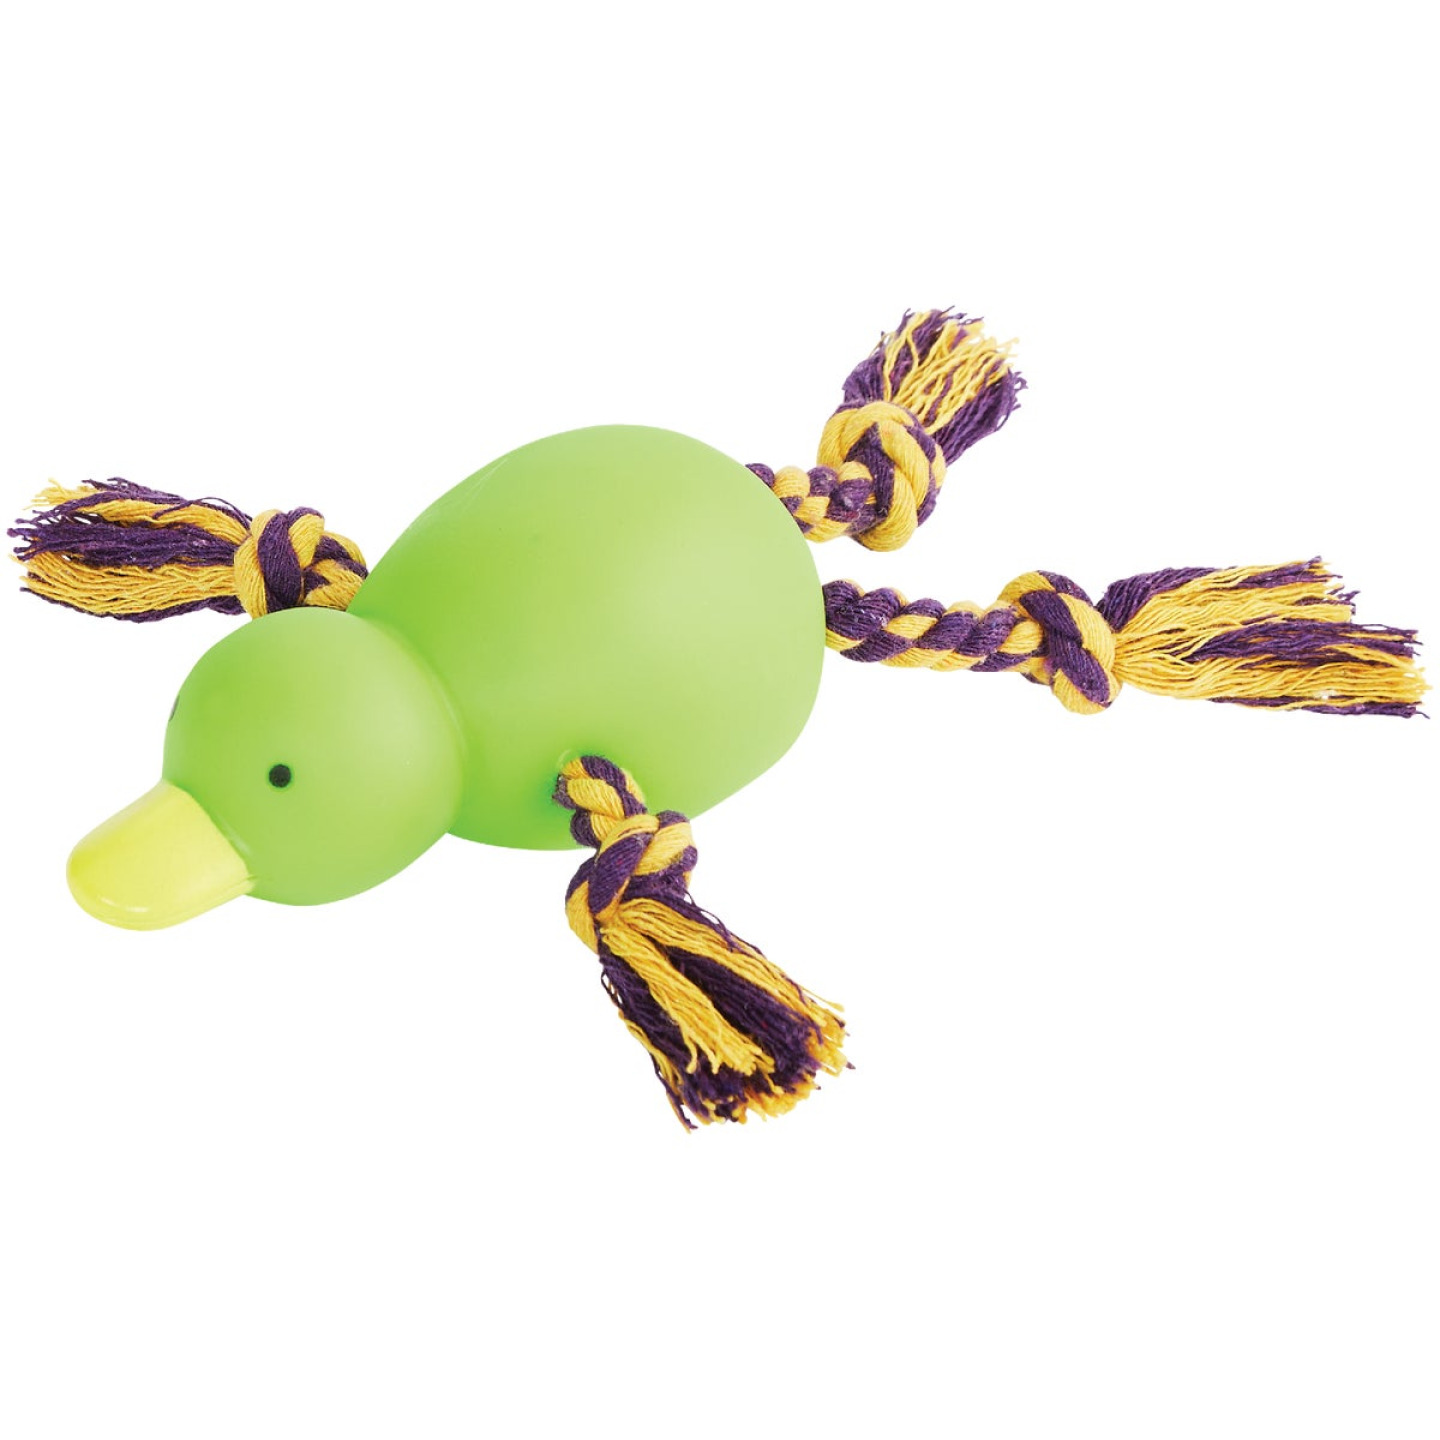 Smart Savers 9 In. Squeaky Duck Dog Toy Image 3